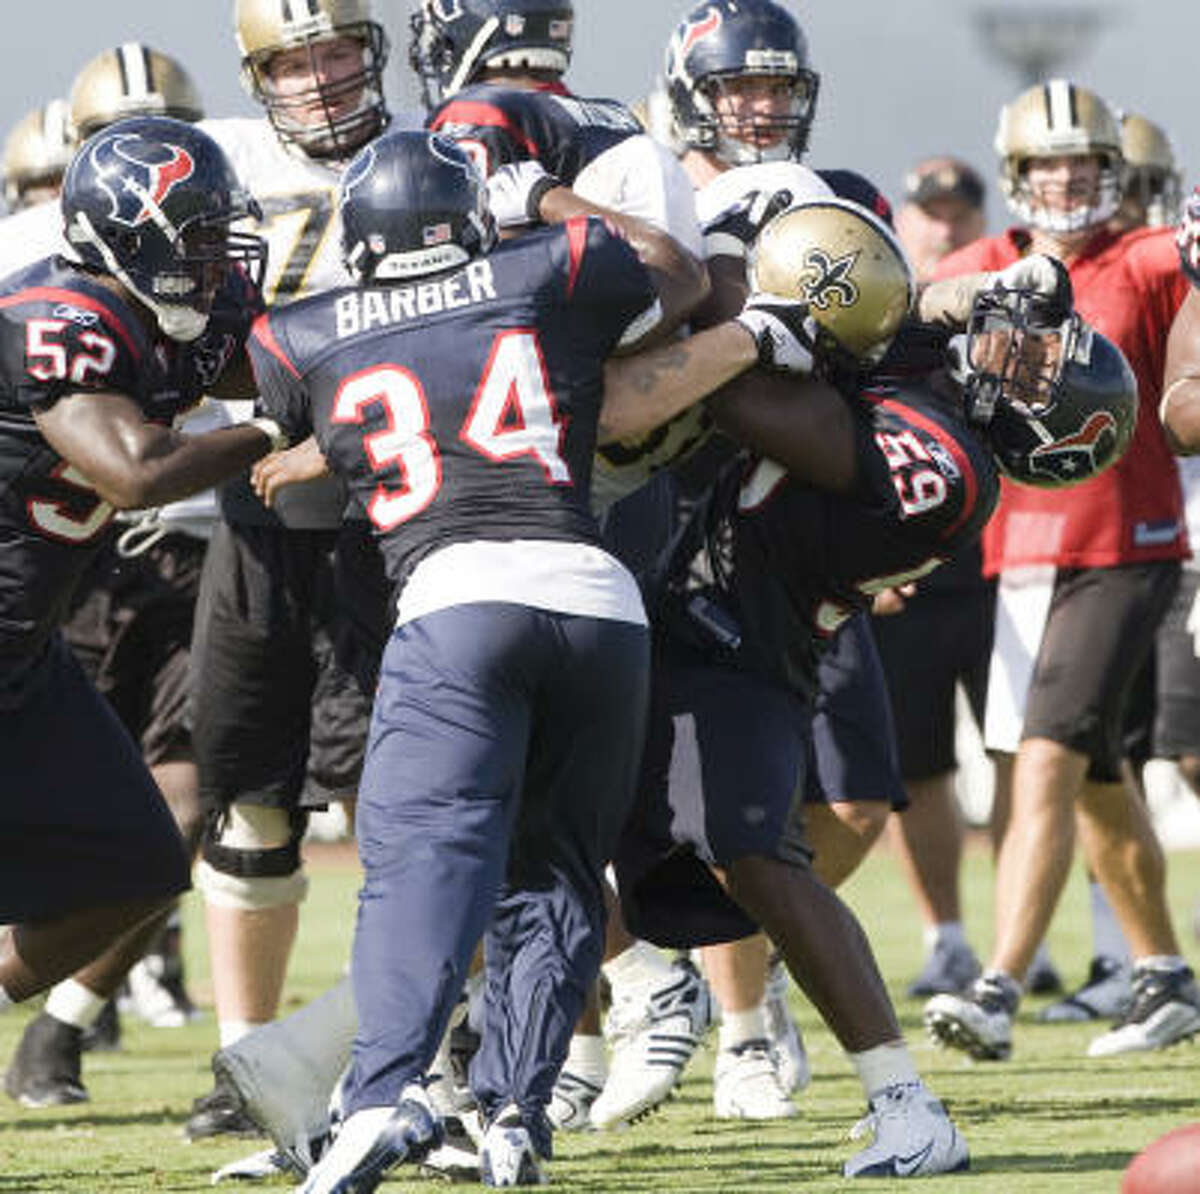 There were six fights during Thursday's morning session, including Texans linebacker DeMeco Ryans, left, and New Orleans Saints tight end Jeremy Shockey.